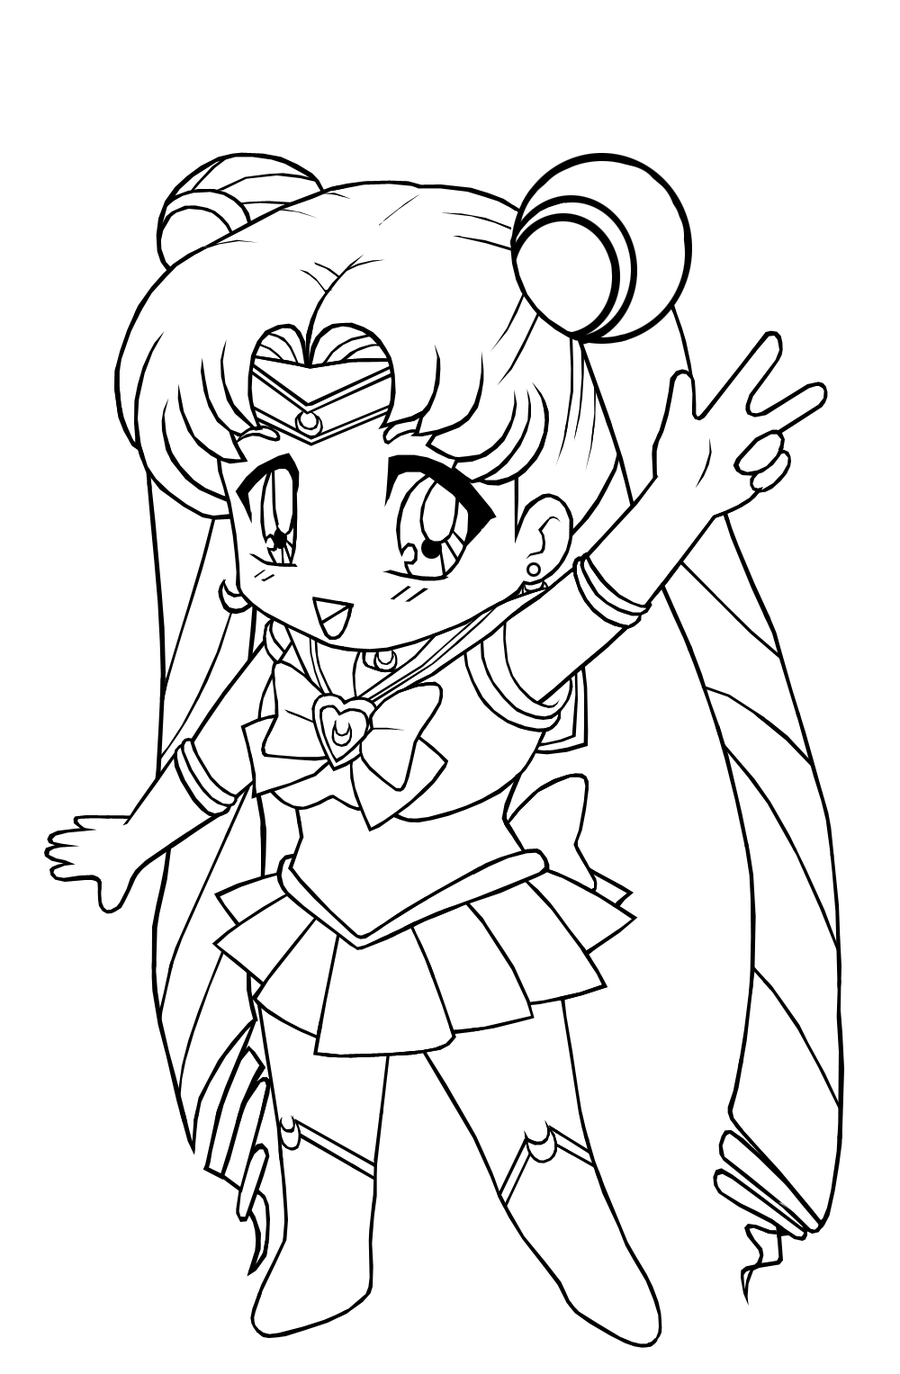 Co coloring pages of anime for teens - Find This Pin And More On Coloring Coloring Pages For Girls Kids Anime